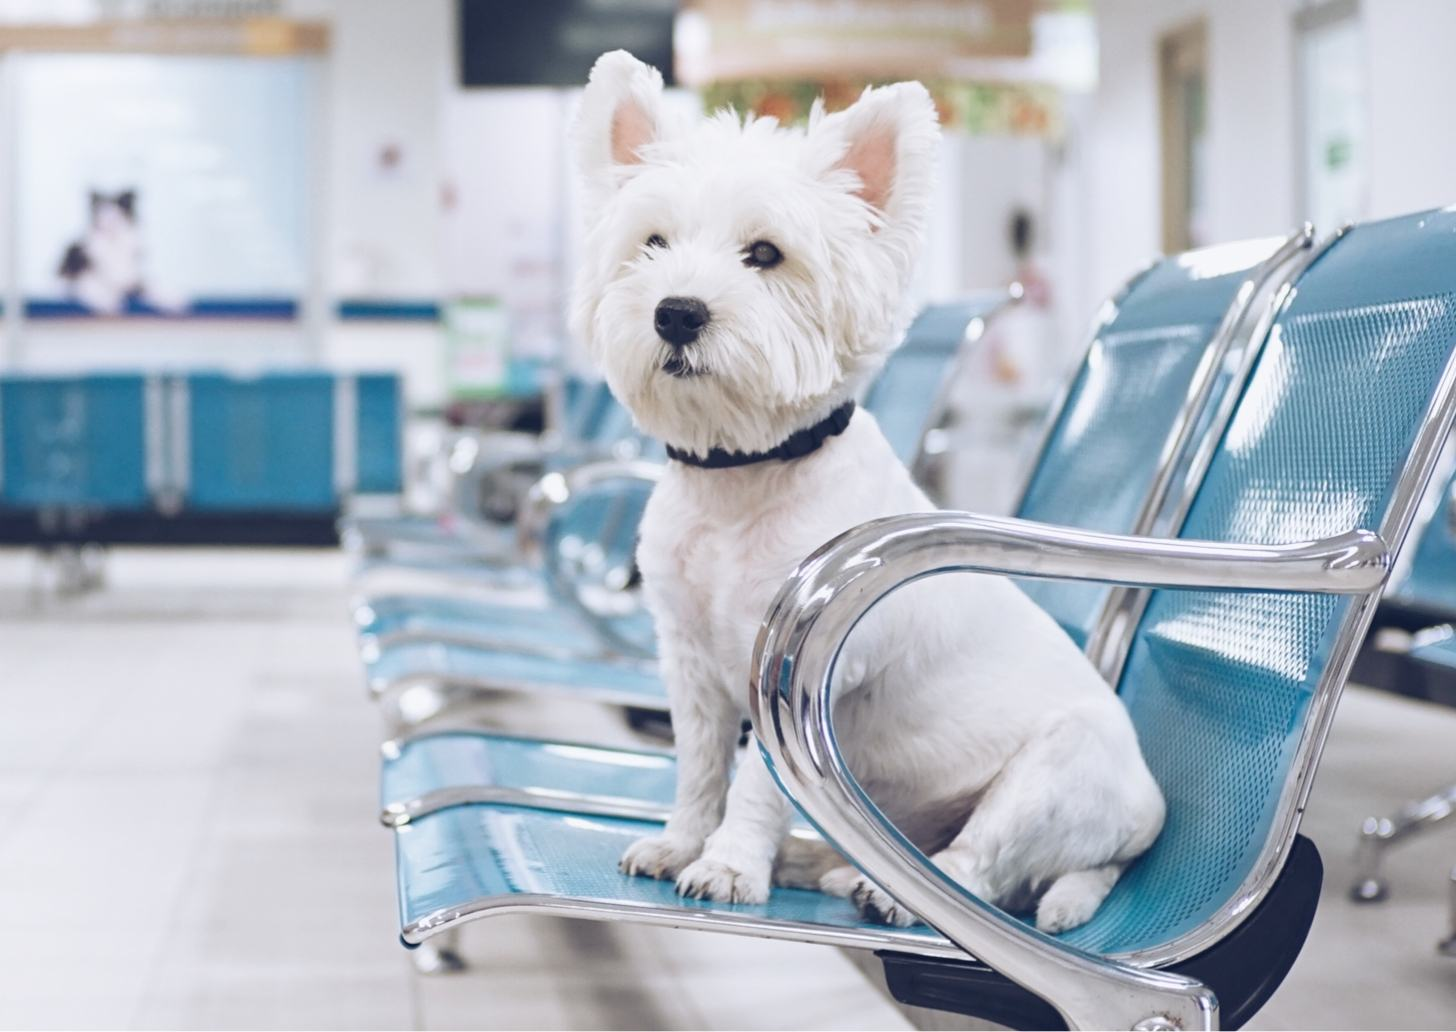 White terrier sitting on a blue chair